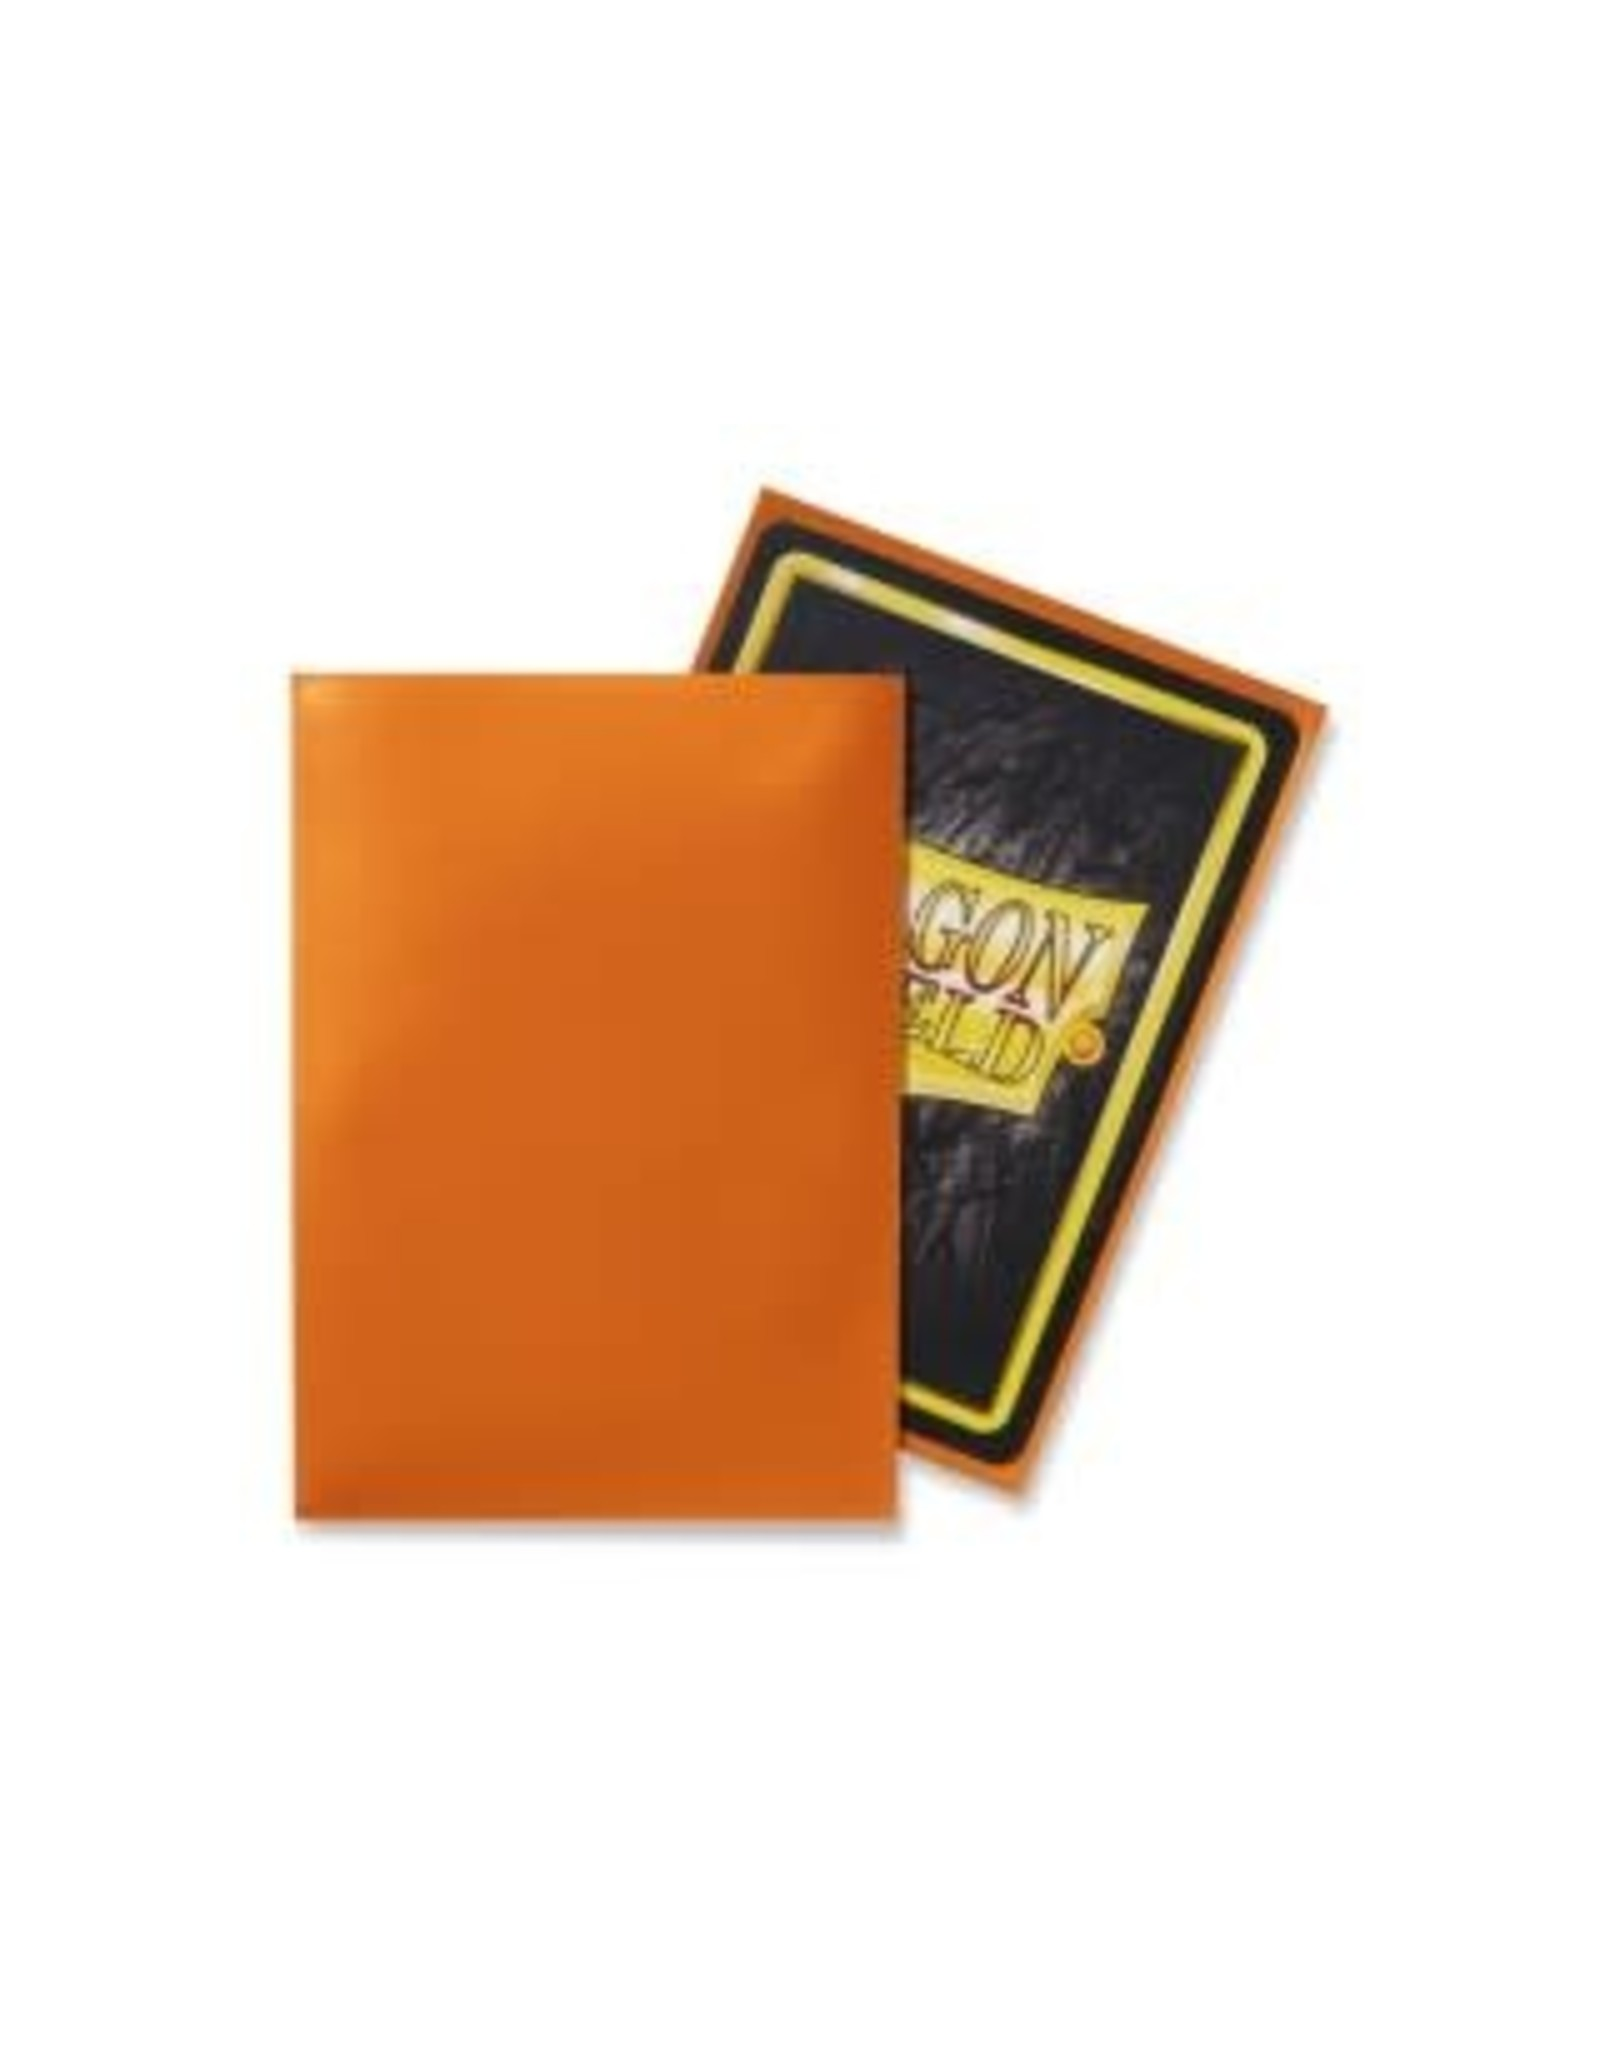 Arcane Tinmen DRAGON SHIELD SLEEVES ORANGE CLASSIC 100CT